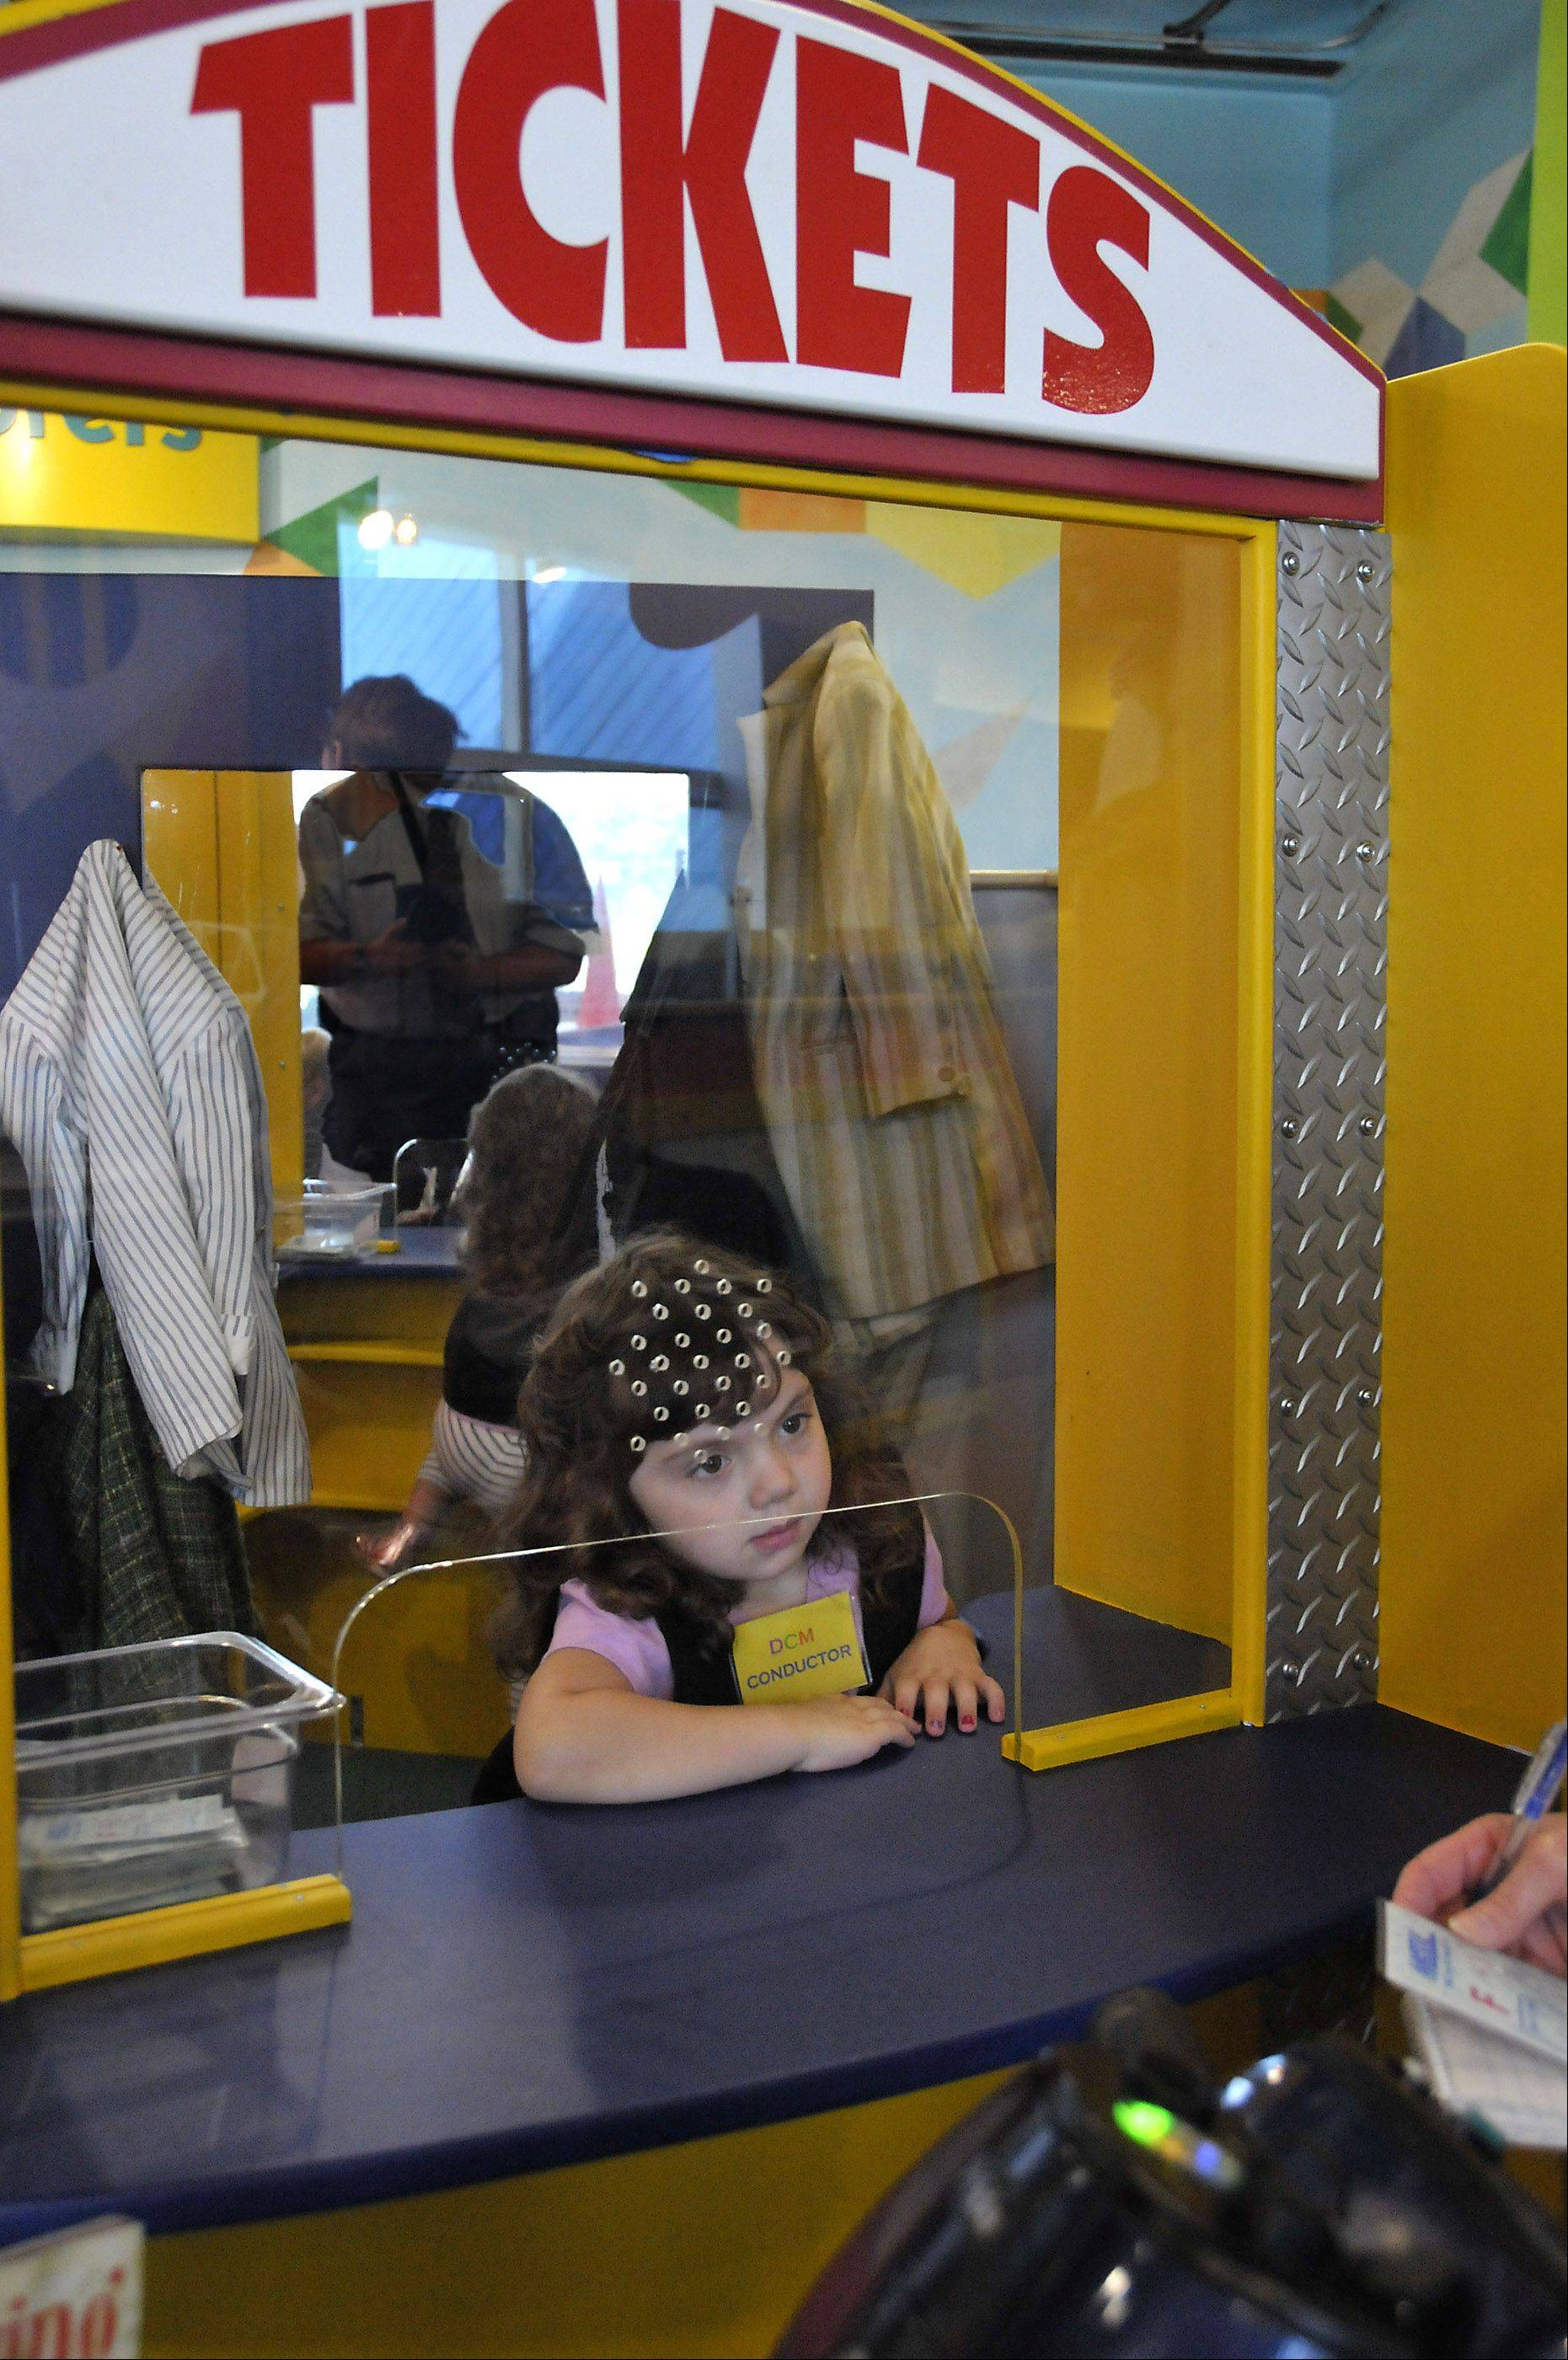 Celia Jefferson, 4, of Evanston, minds the ticket booth at the DuPage Children's Museum's train exhibit. Her family members are regulars at the Naperville museum.